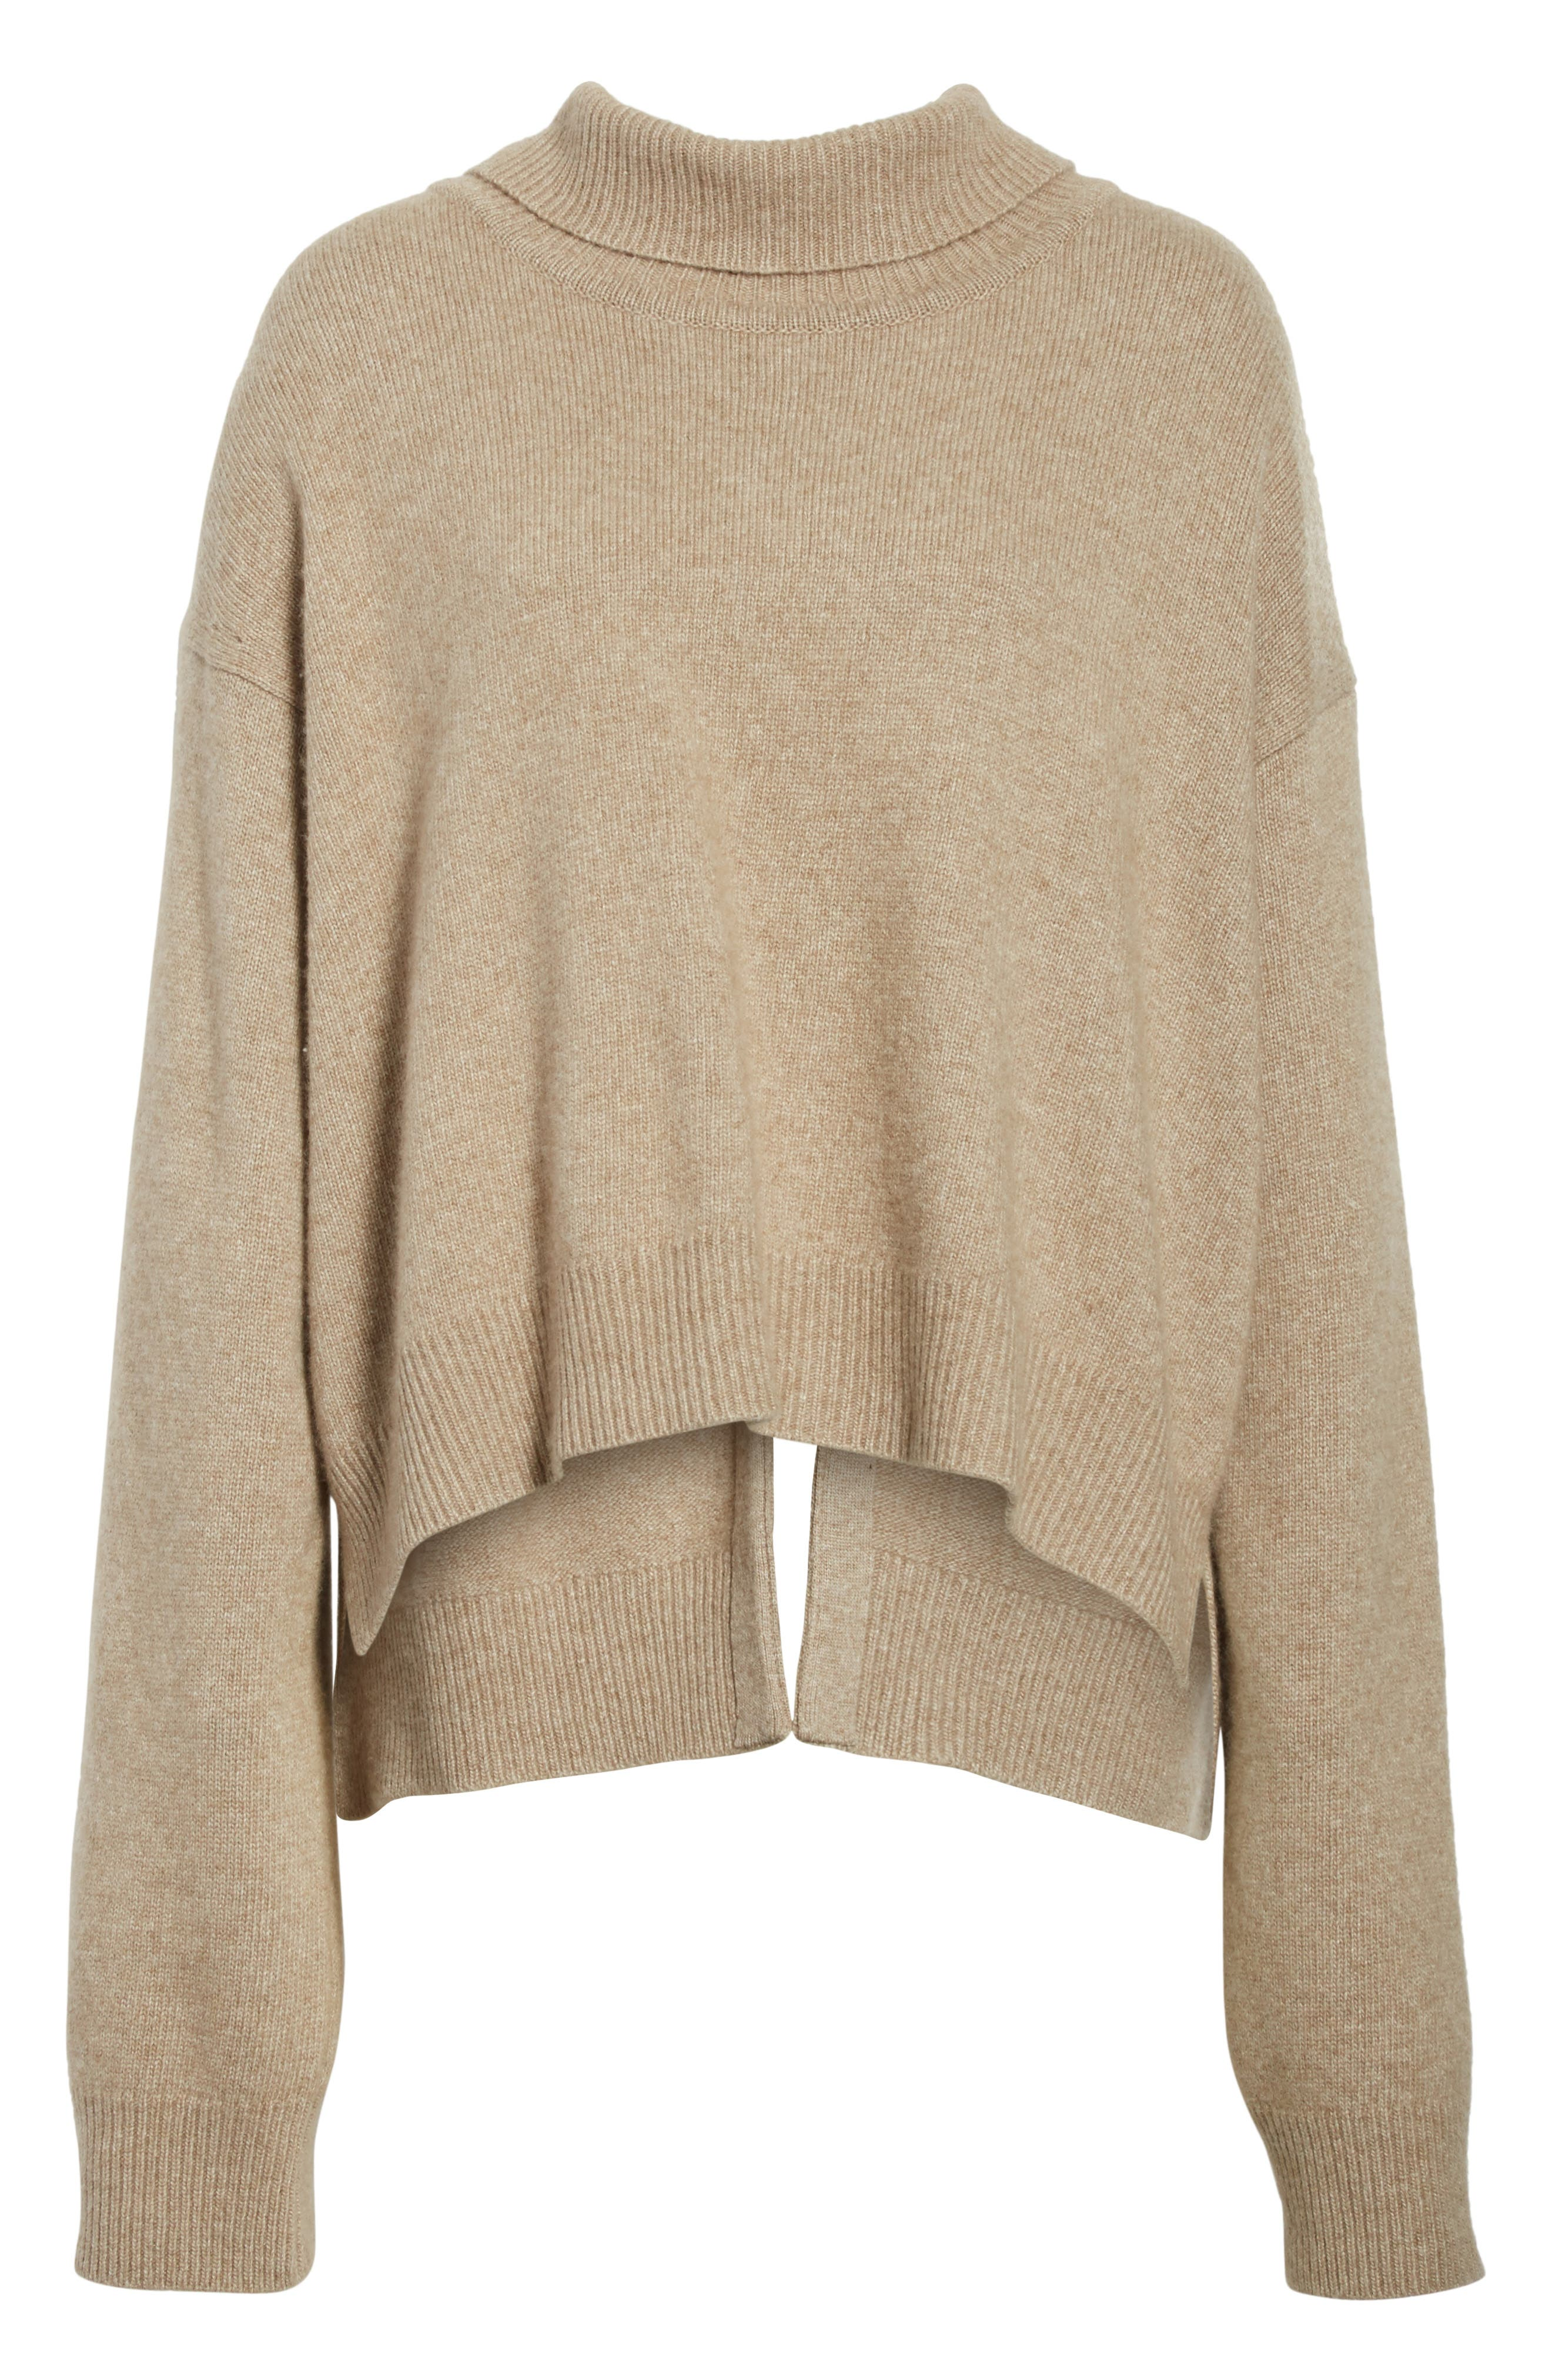 Oversized Tie Back Sweater,                             Alternate thumbnail 7, color,                             Knit Beige